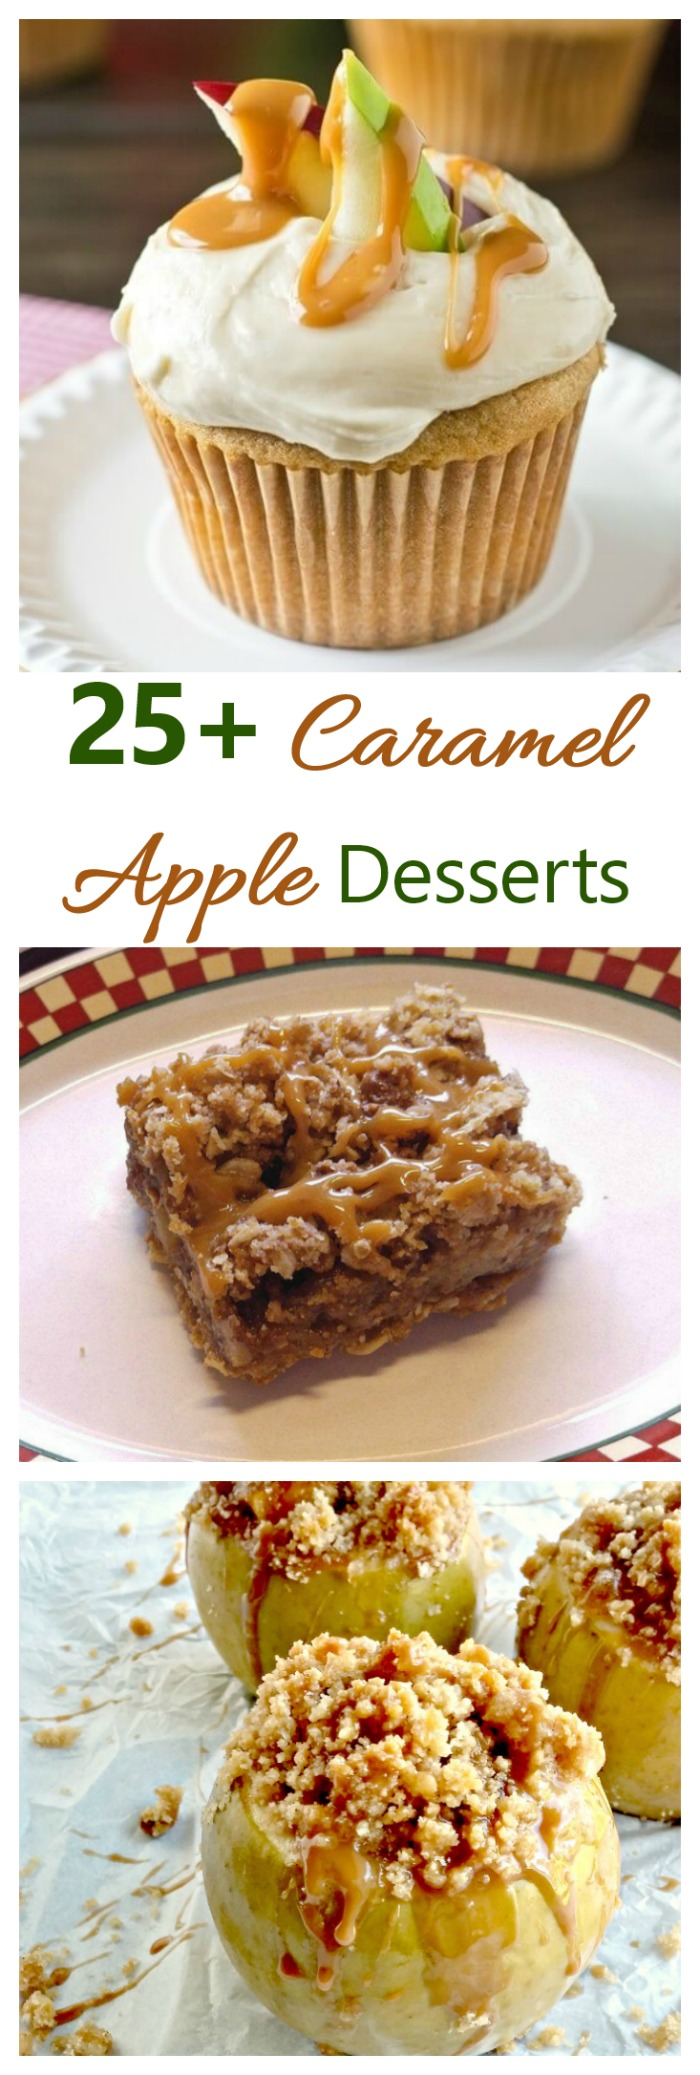 These 25 caramel apple dessert ideas feature the traditional favorite as well as cookies, bars and even cocktails. #caramelapples #toffeeapples #candyapples